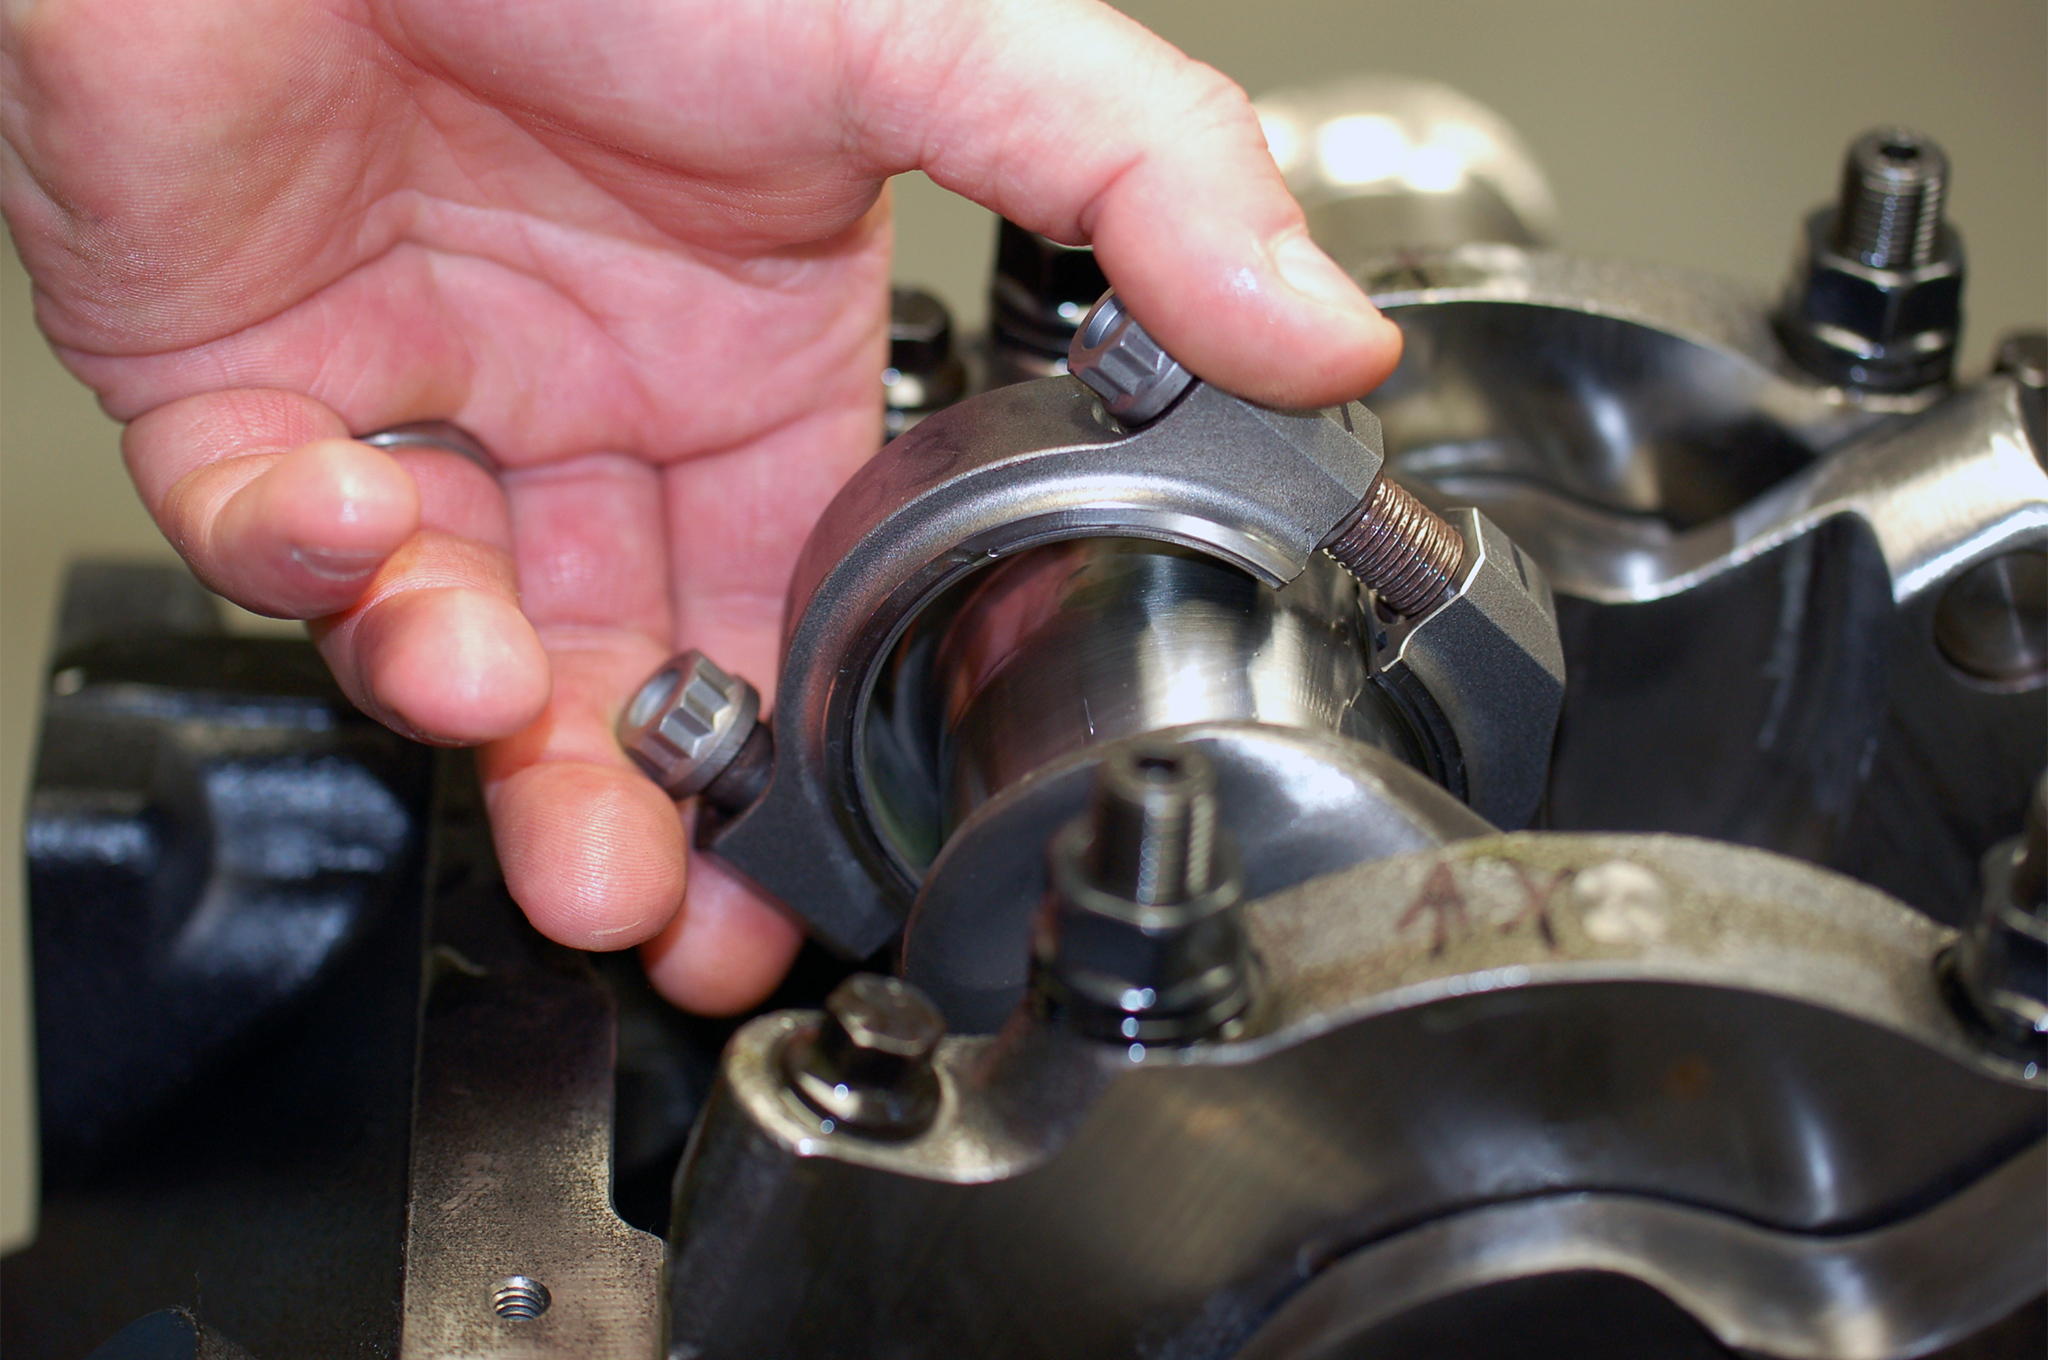 When installing your rods and pistons, be very careful with the edges of the rods and caps. There are sharp edges that can scratch and gall the crank or cylinder surfaces.